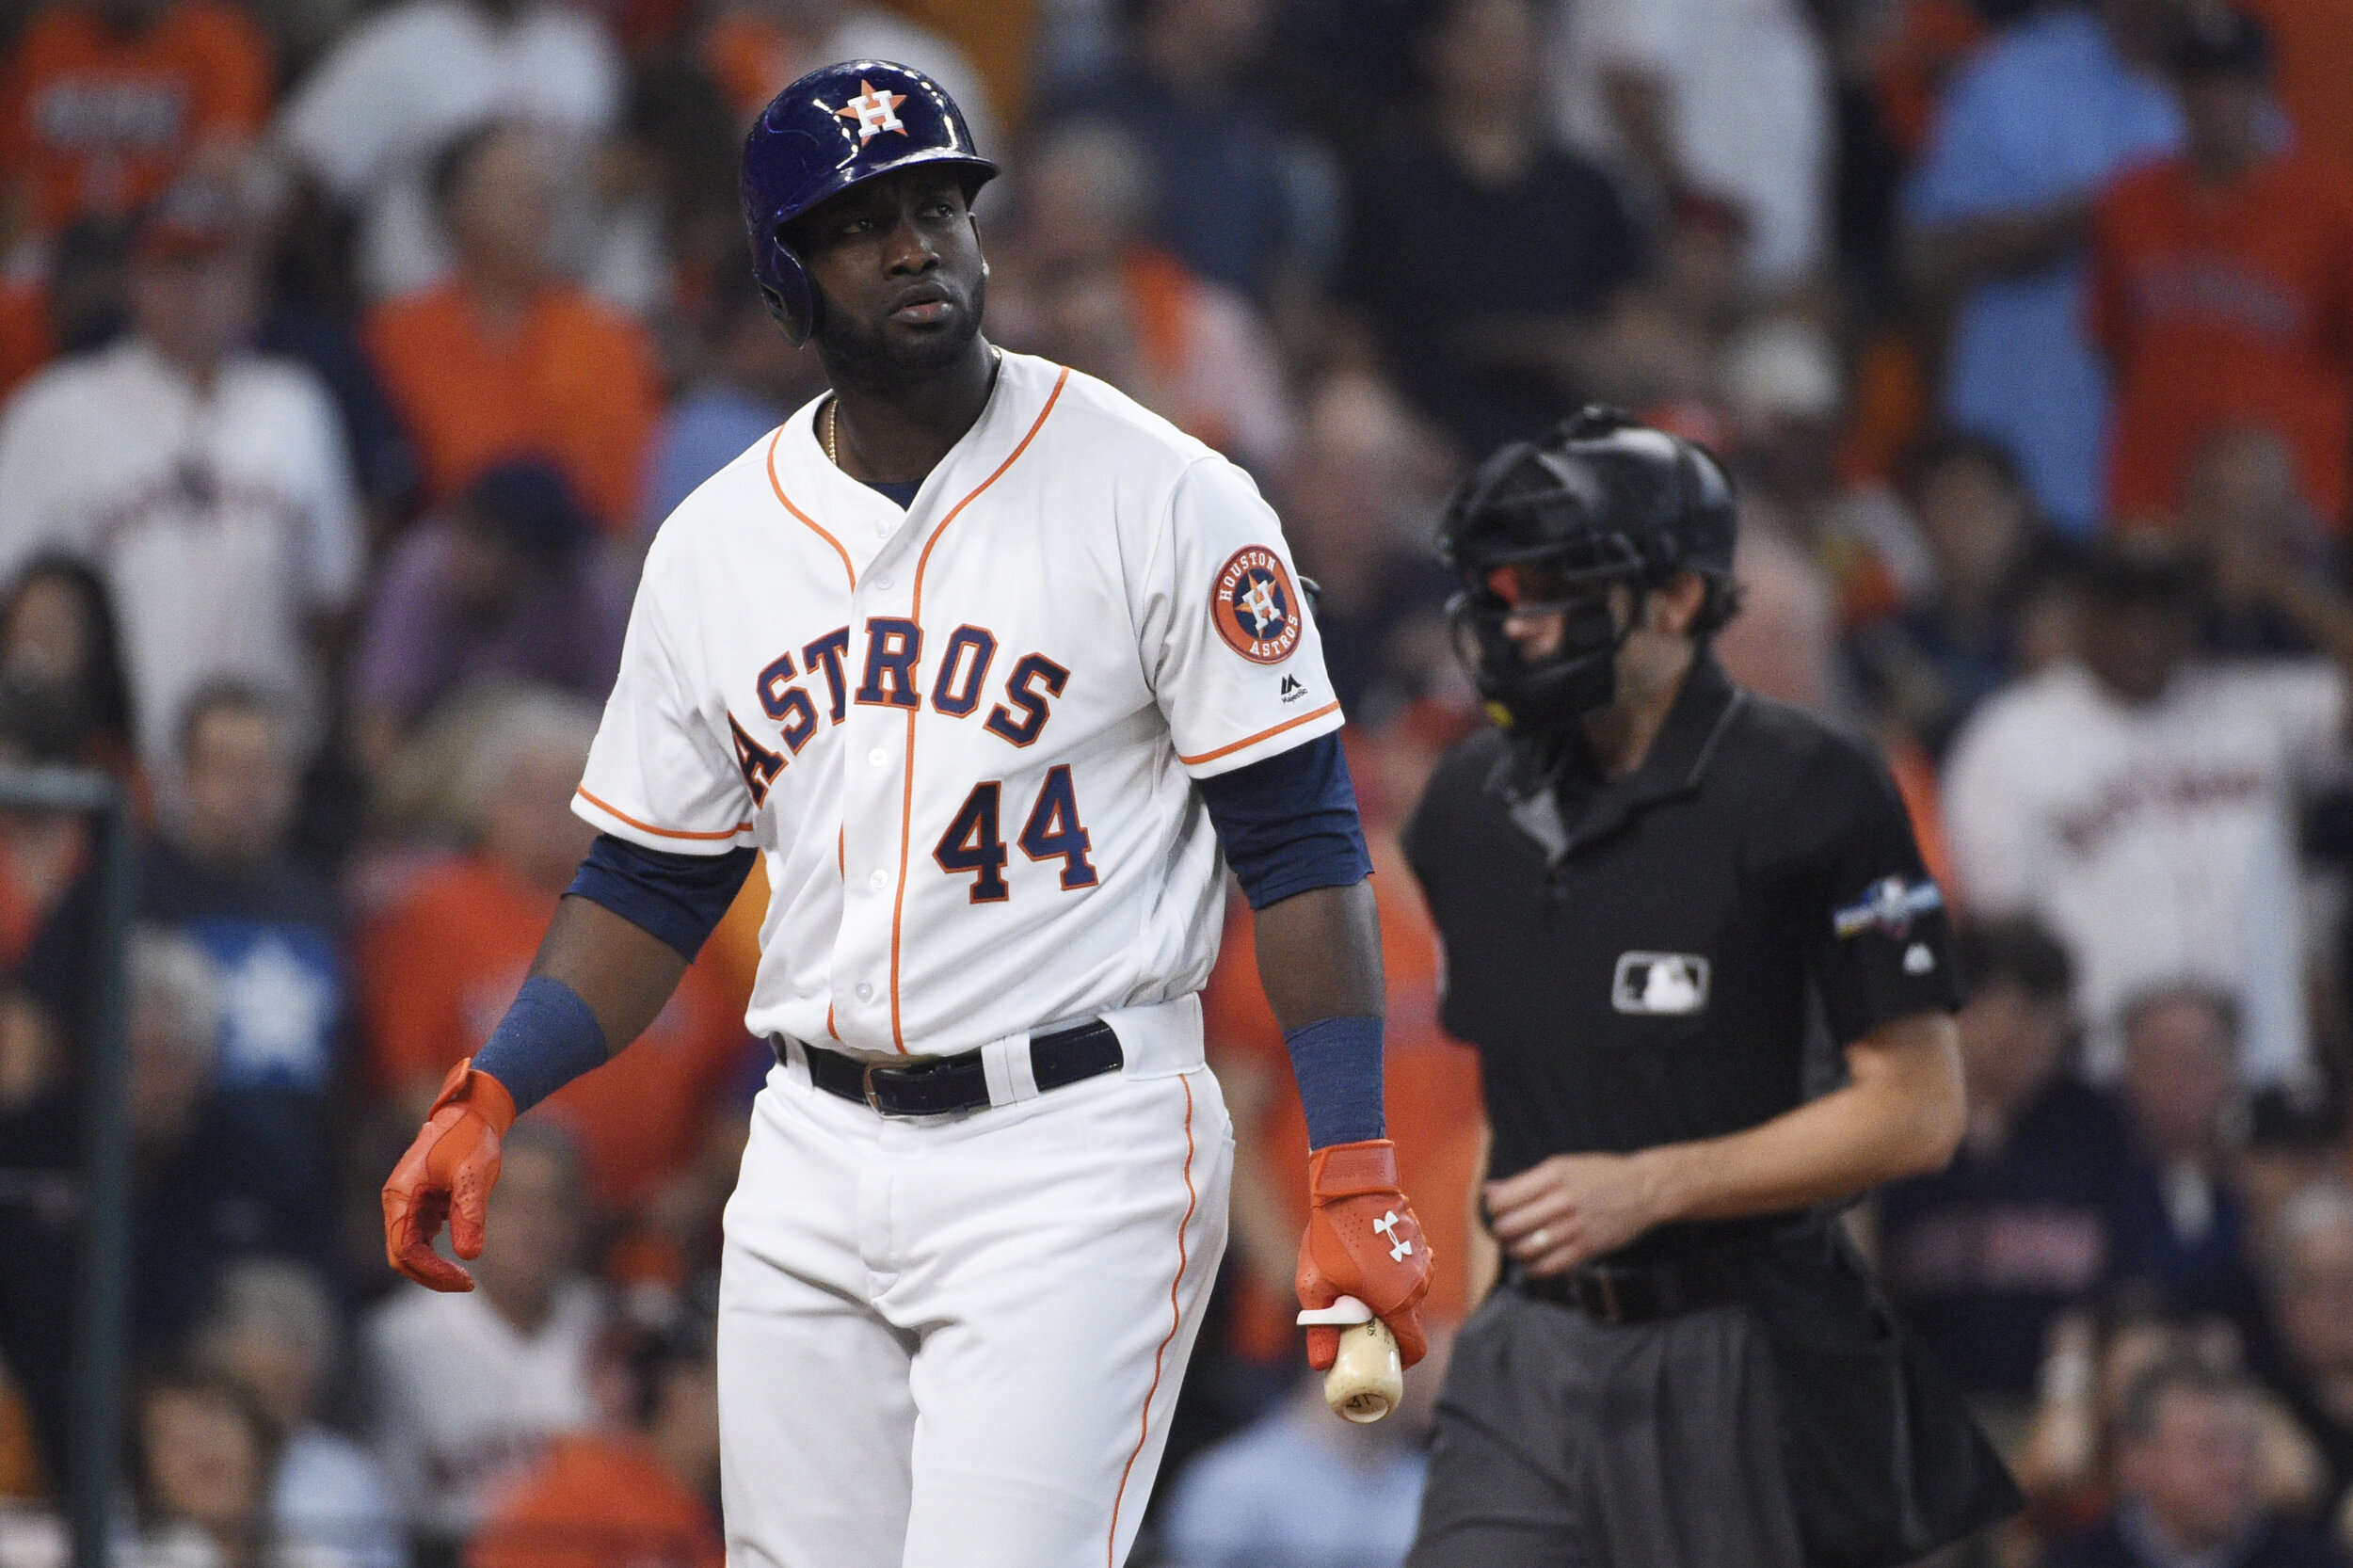 Alvarez got off to a hot start and never slowed down, putting up some incredible numbers that should earn him the AL ROTY award.  Photo from the Associated Press.